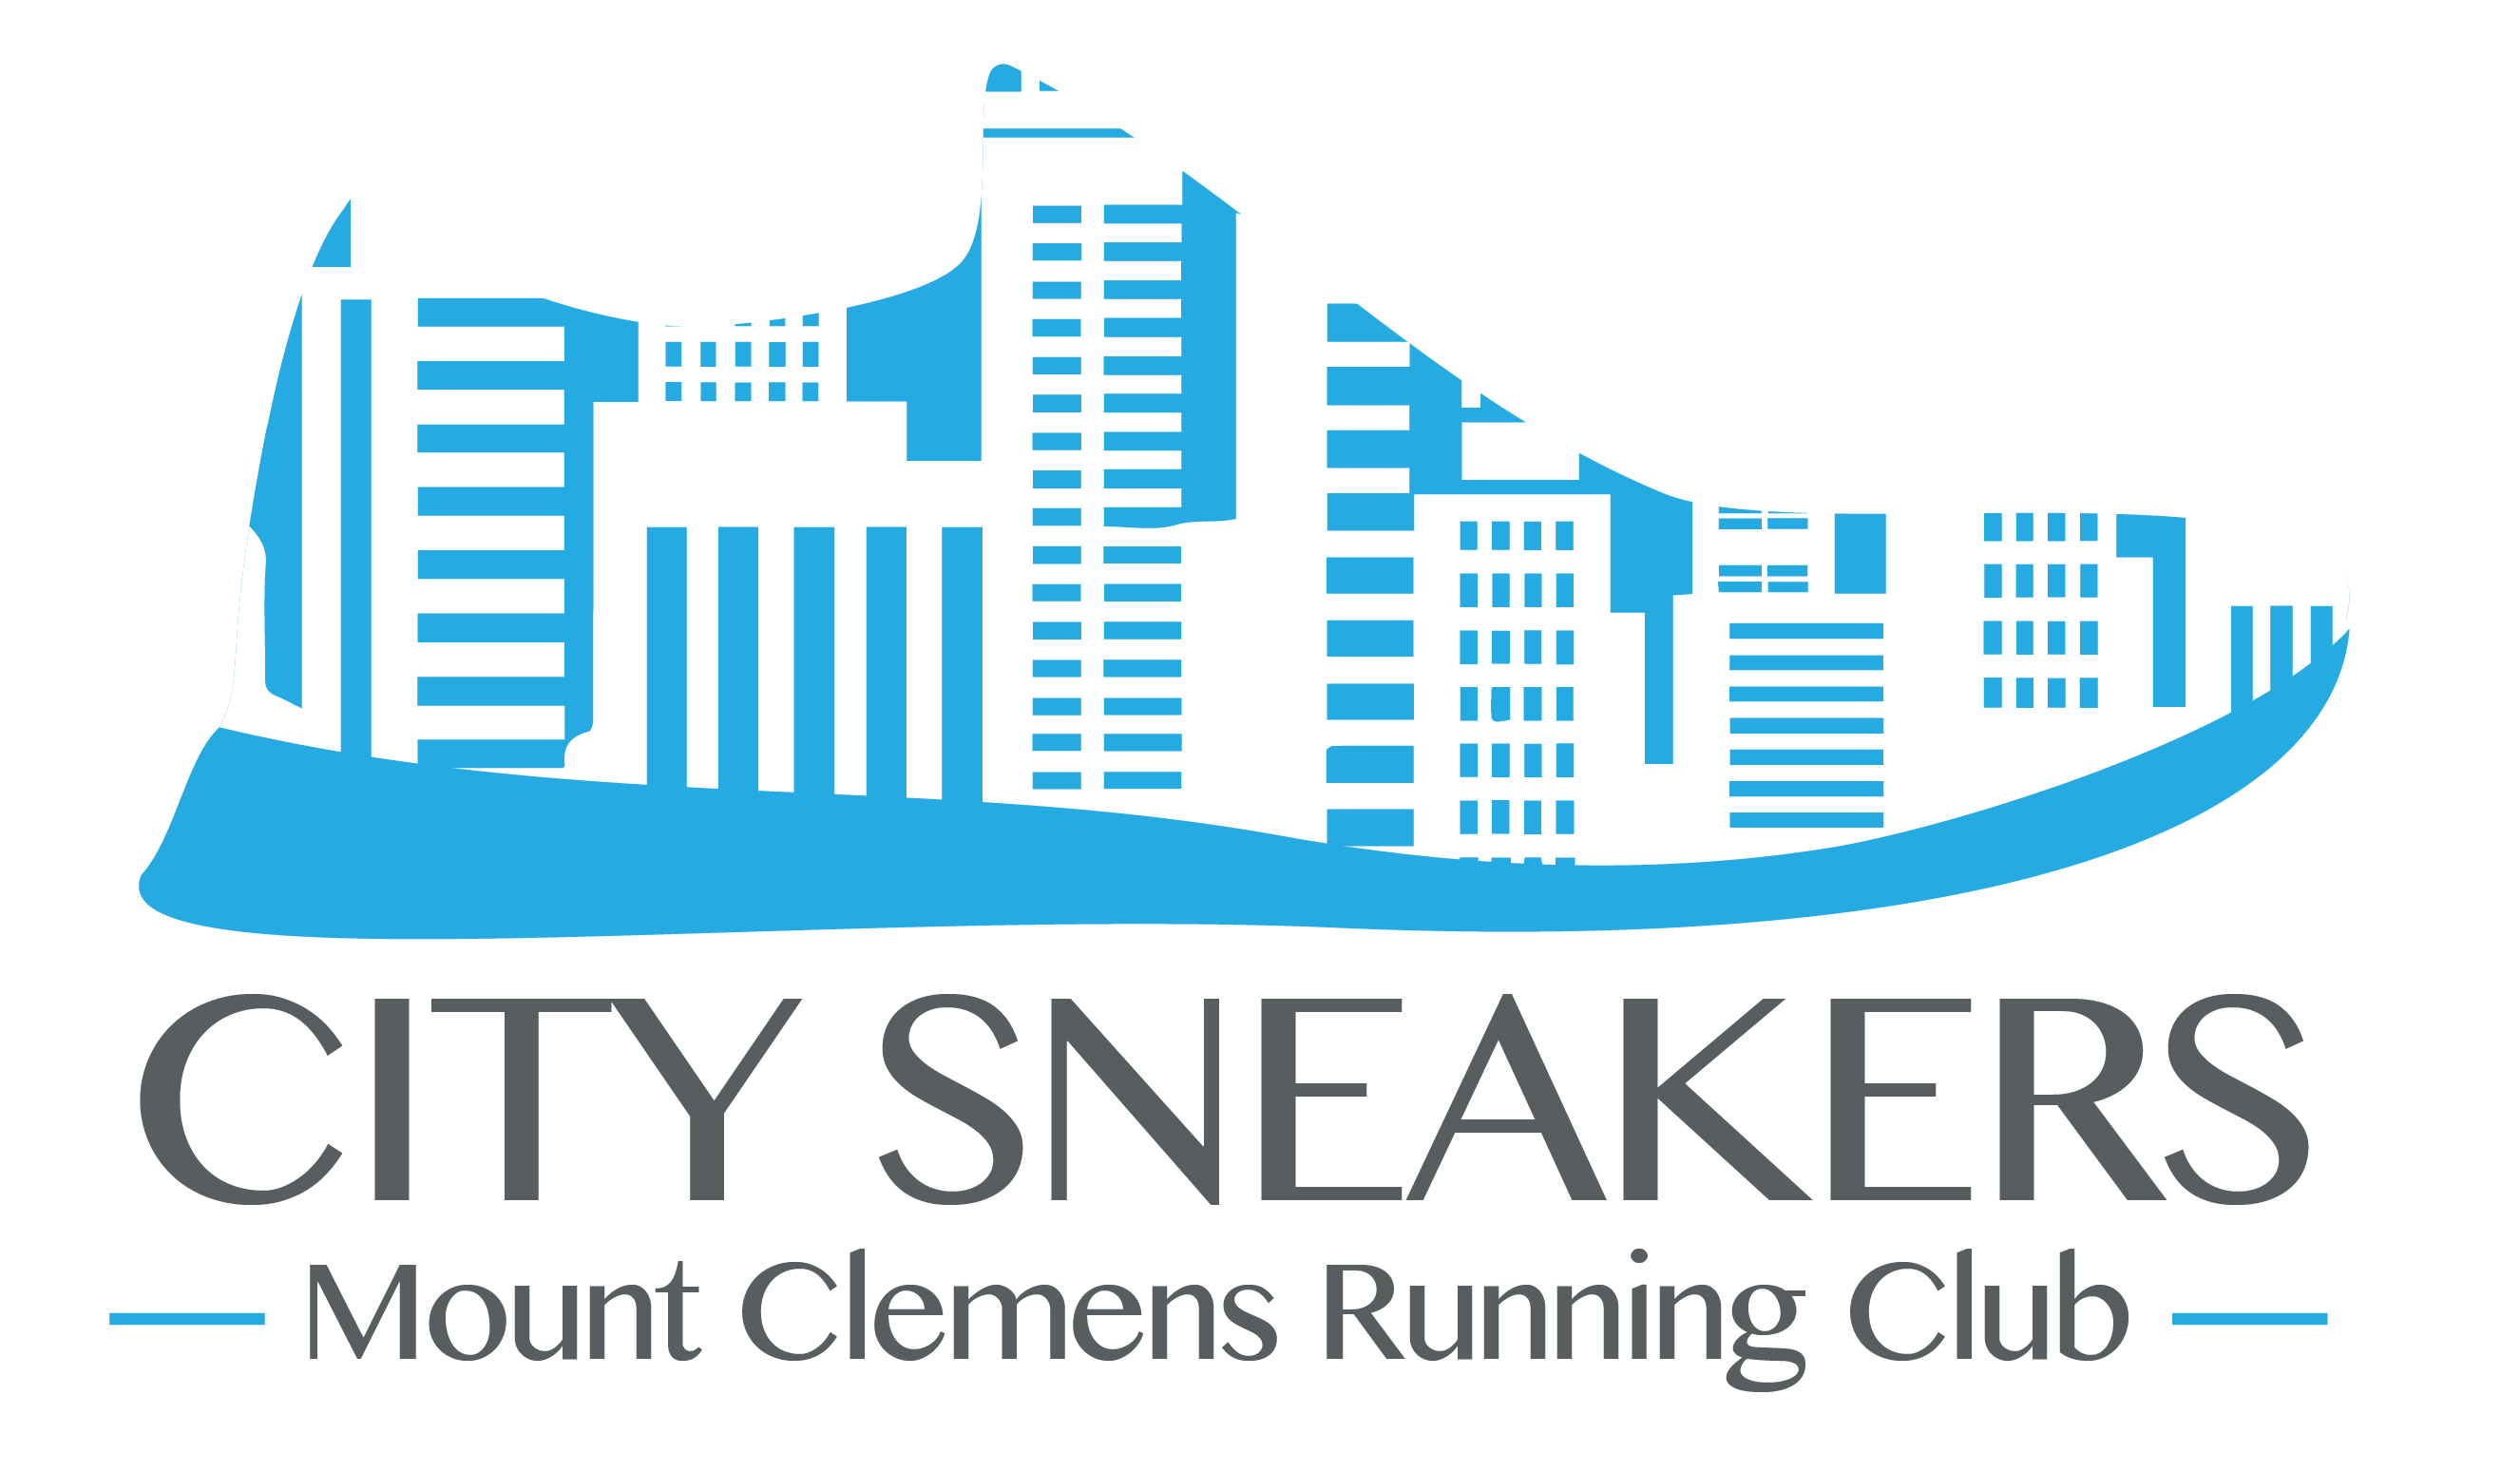 City Sneakers Walking And Running Club